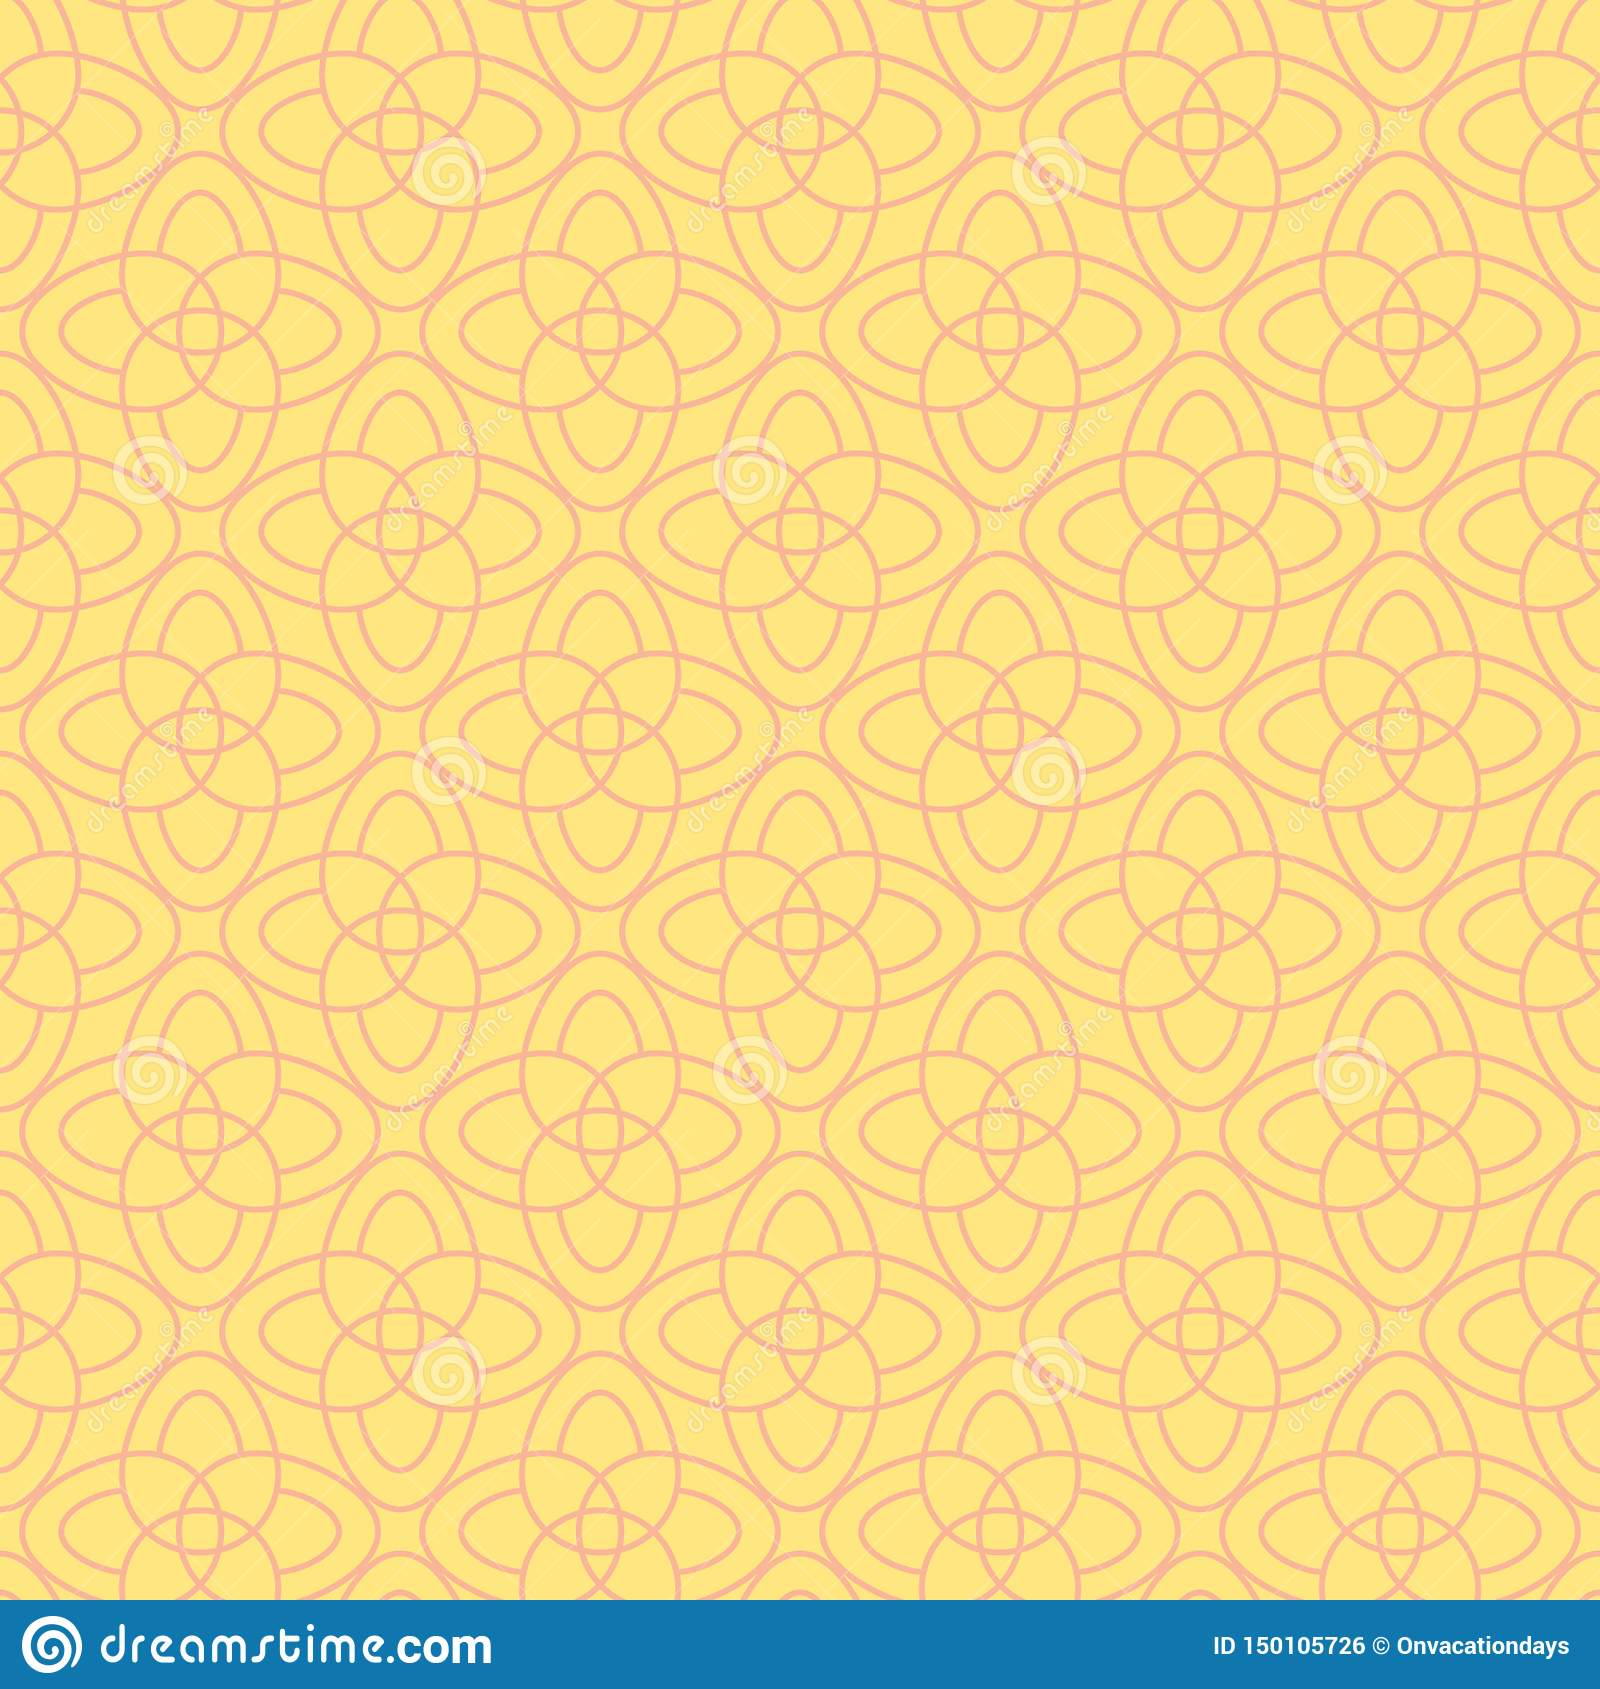 Vector seamless pattern of abstract flowers